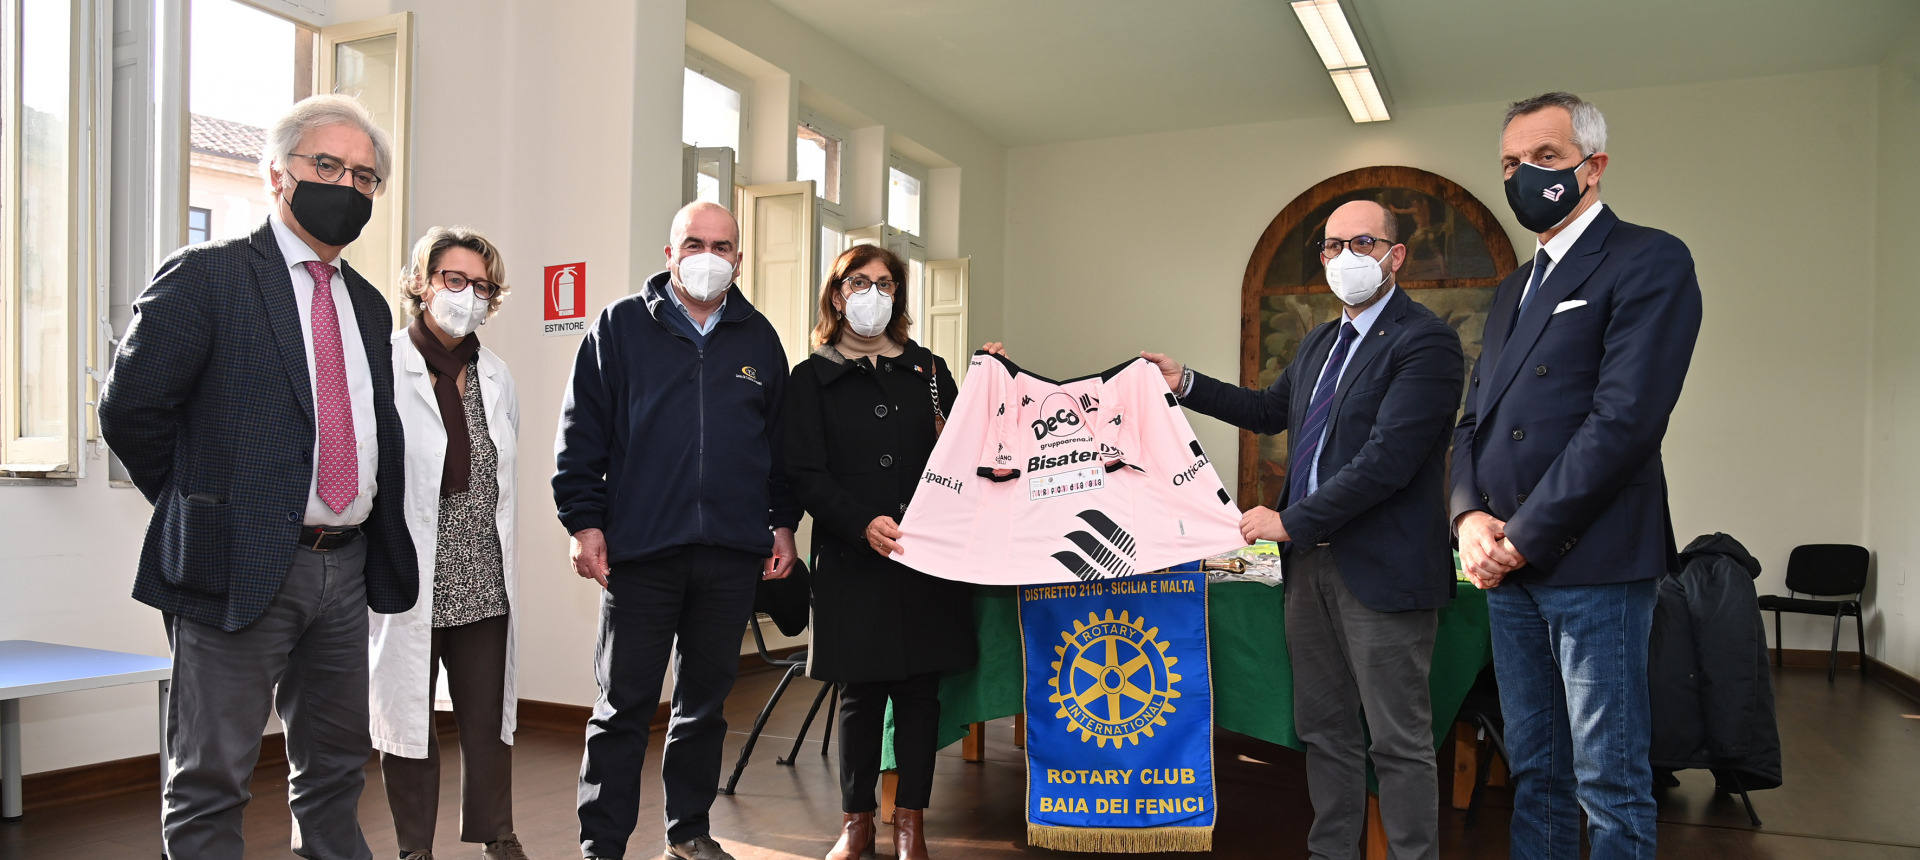 Palermo t-shirts become scrubs for young patients at the Children's Hospital